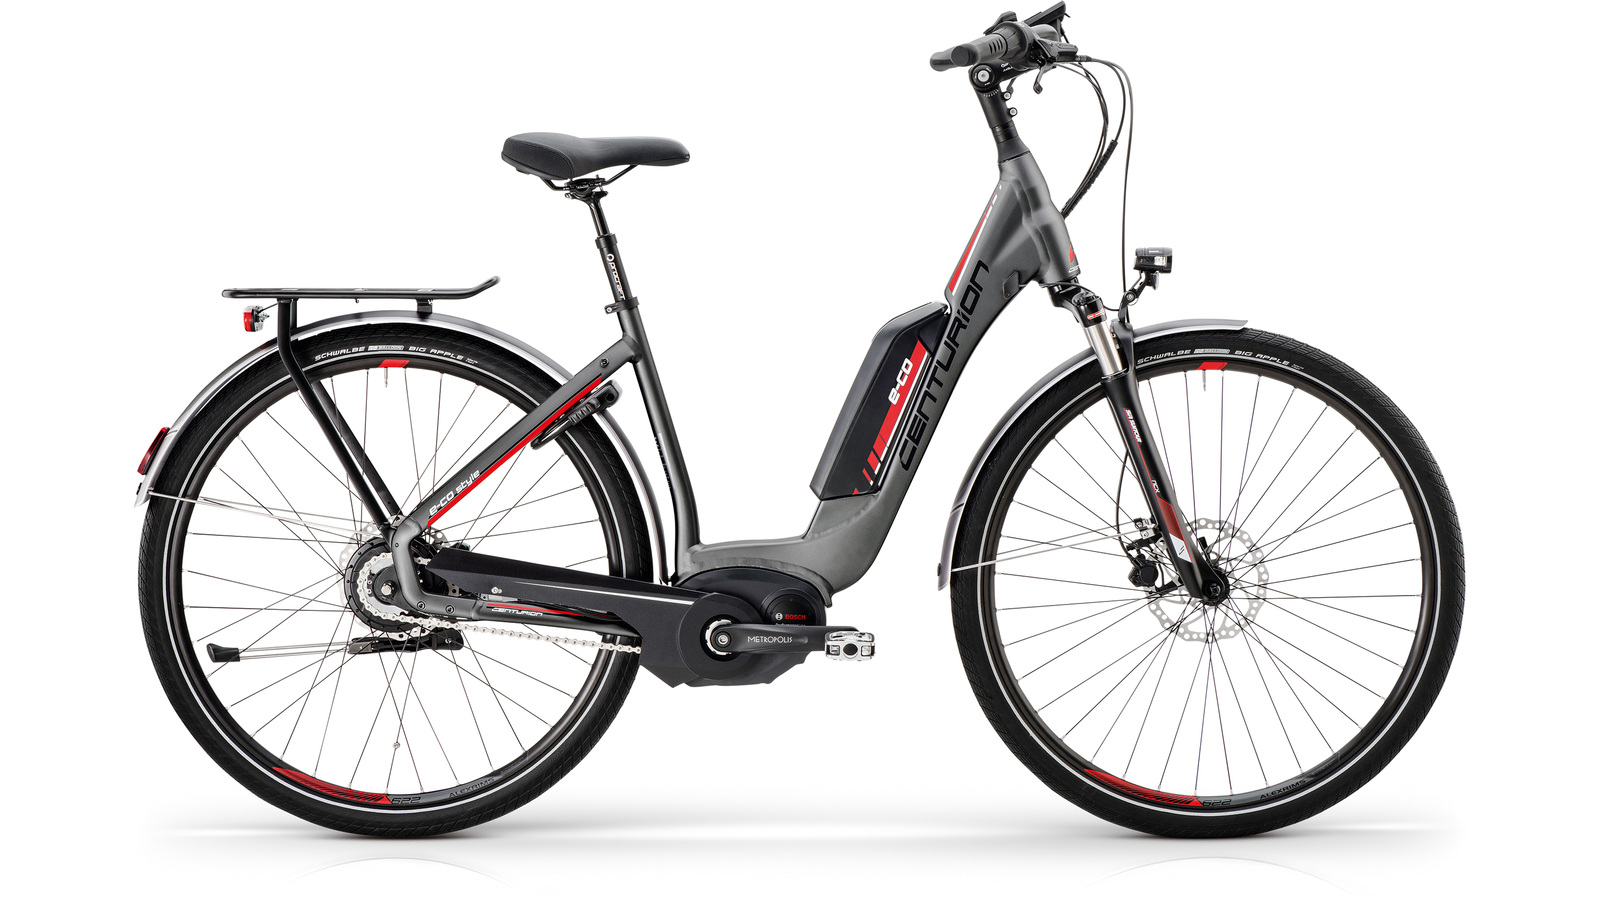 Test result 1,9 for the E-Co Style 500 in e-Bike 2/17